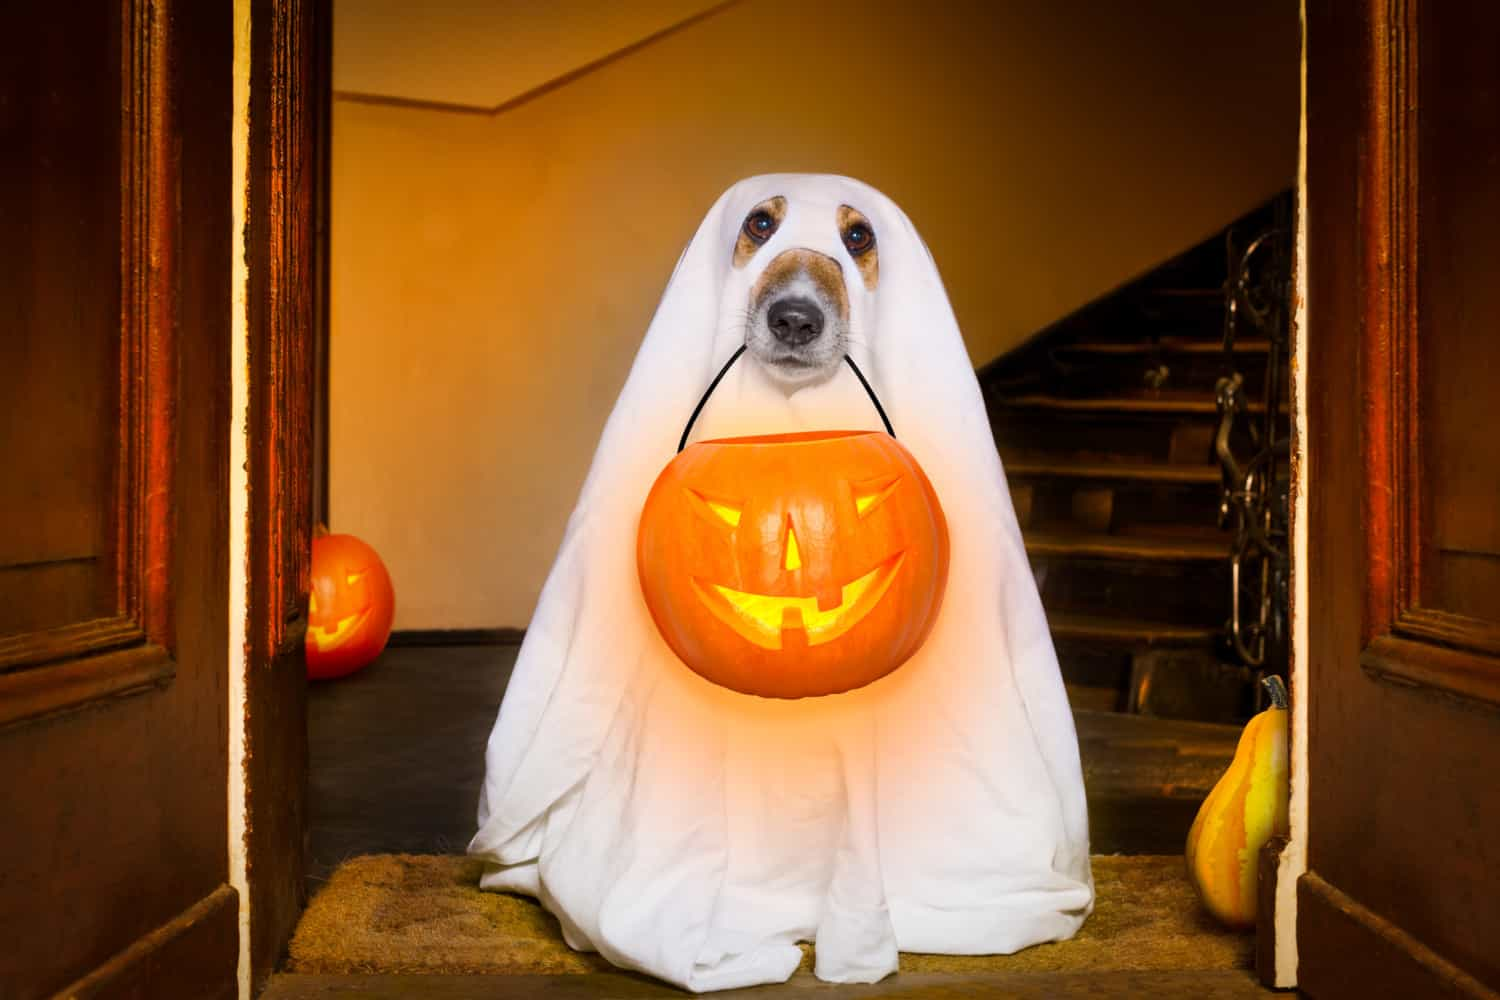 Dog in a ghost costume sitting in the doorway with a pumpkin lantern